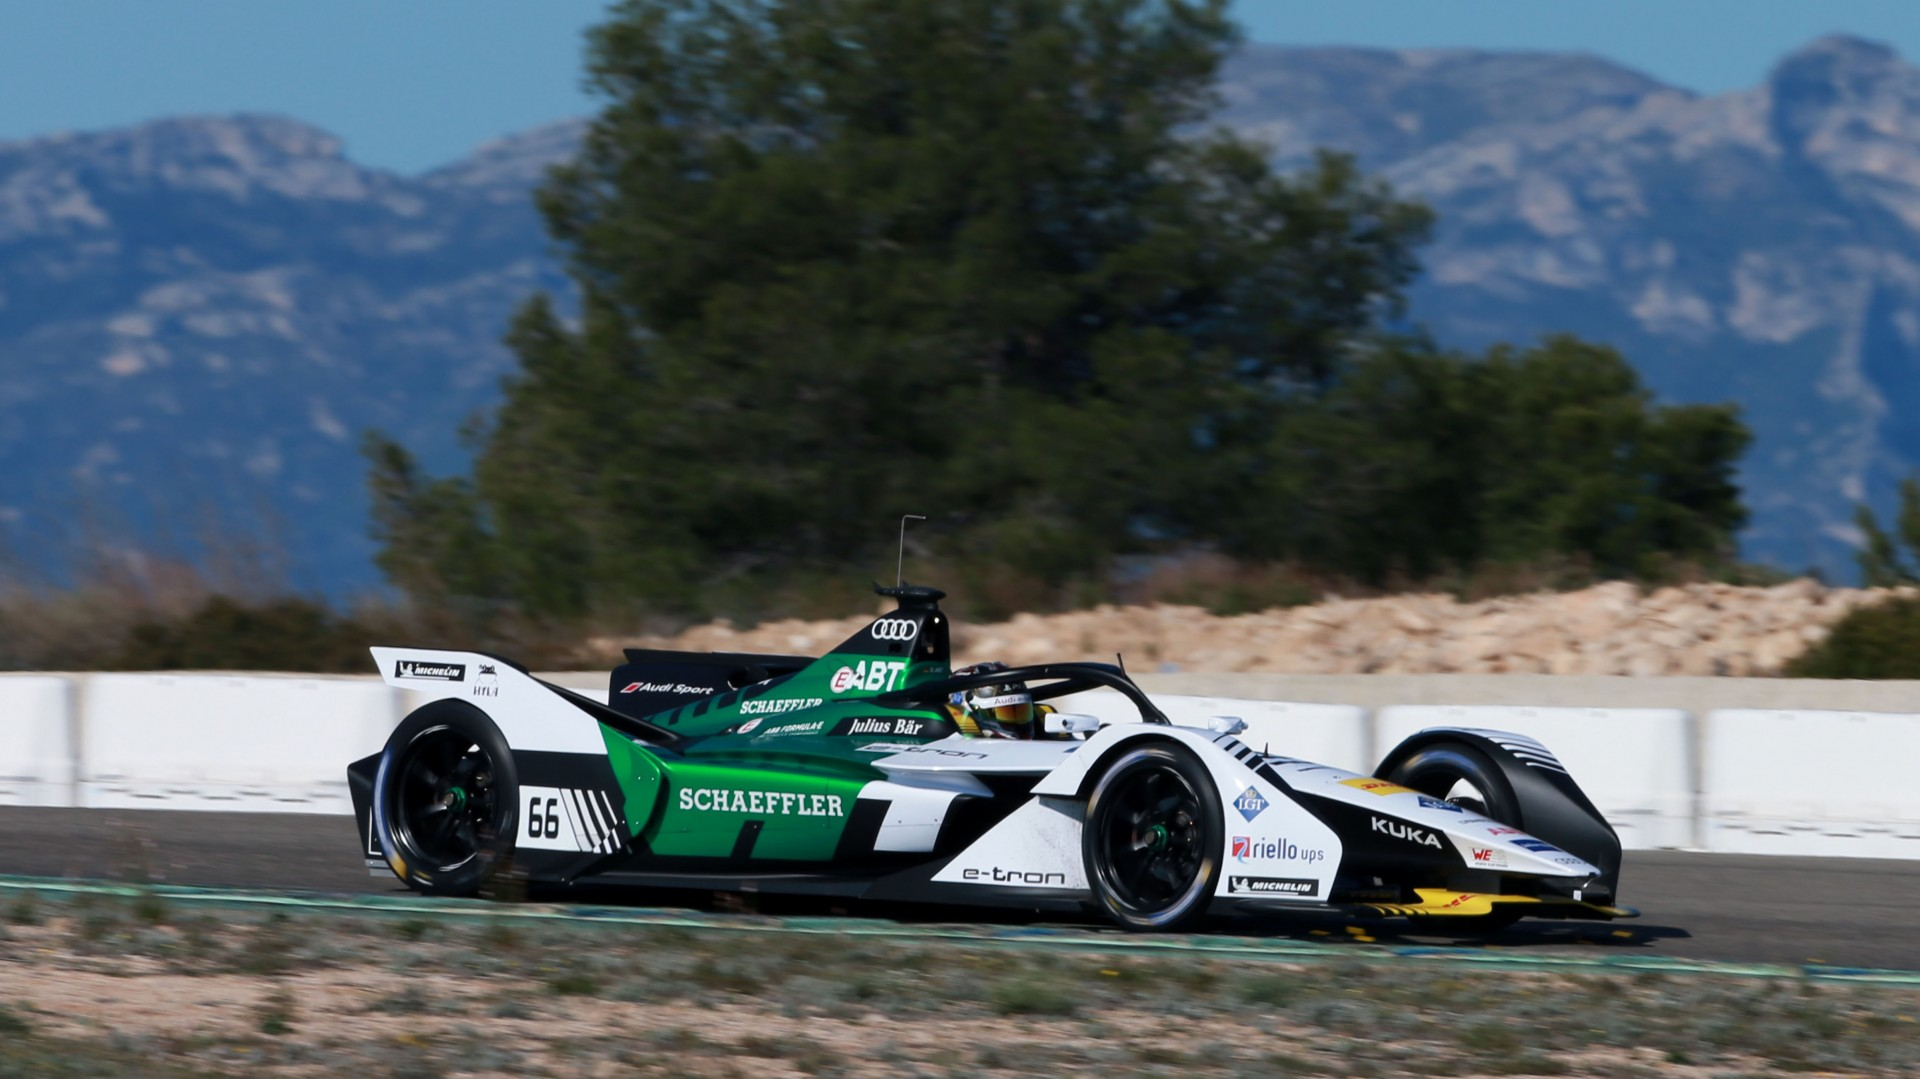 Audi levert e-tron FE05 aan Formule E-team Virgin Racing